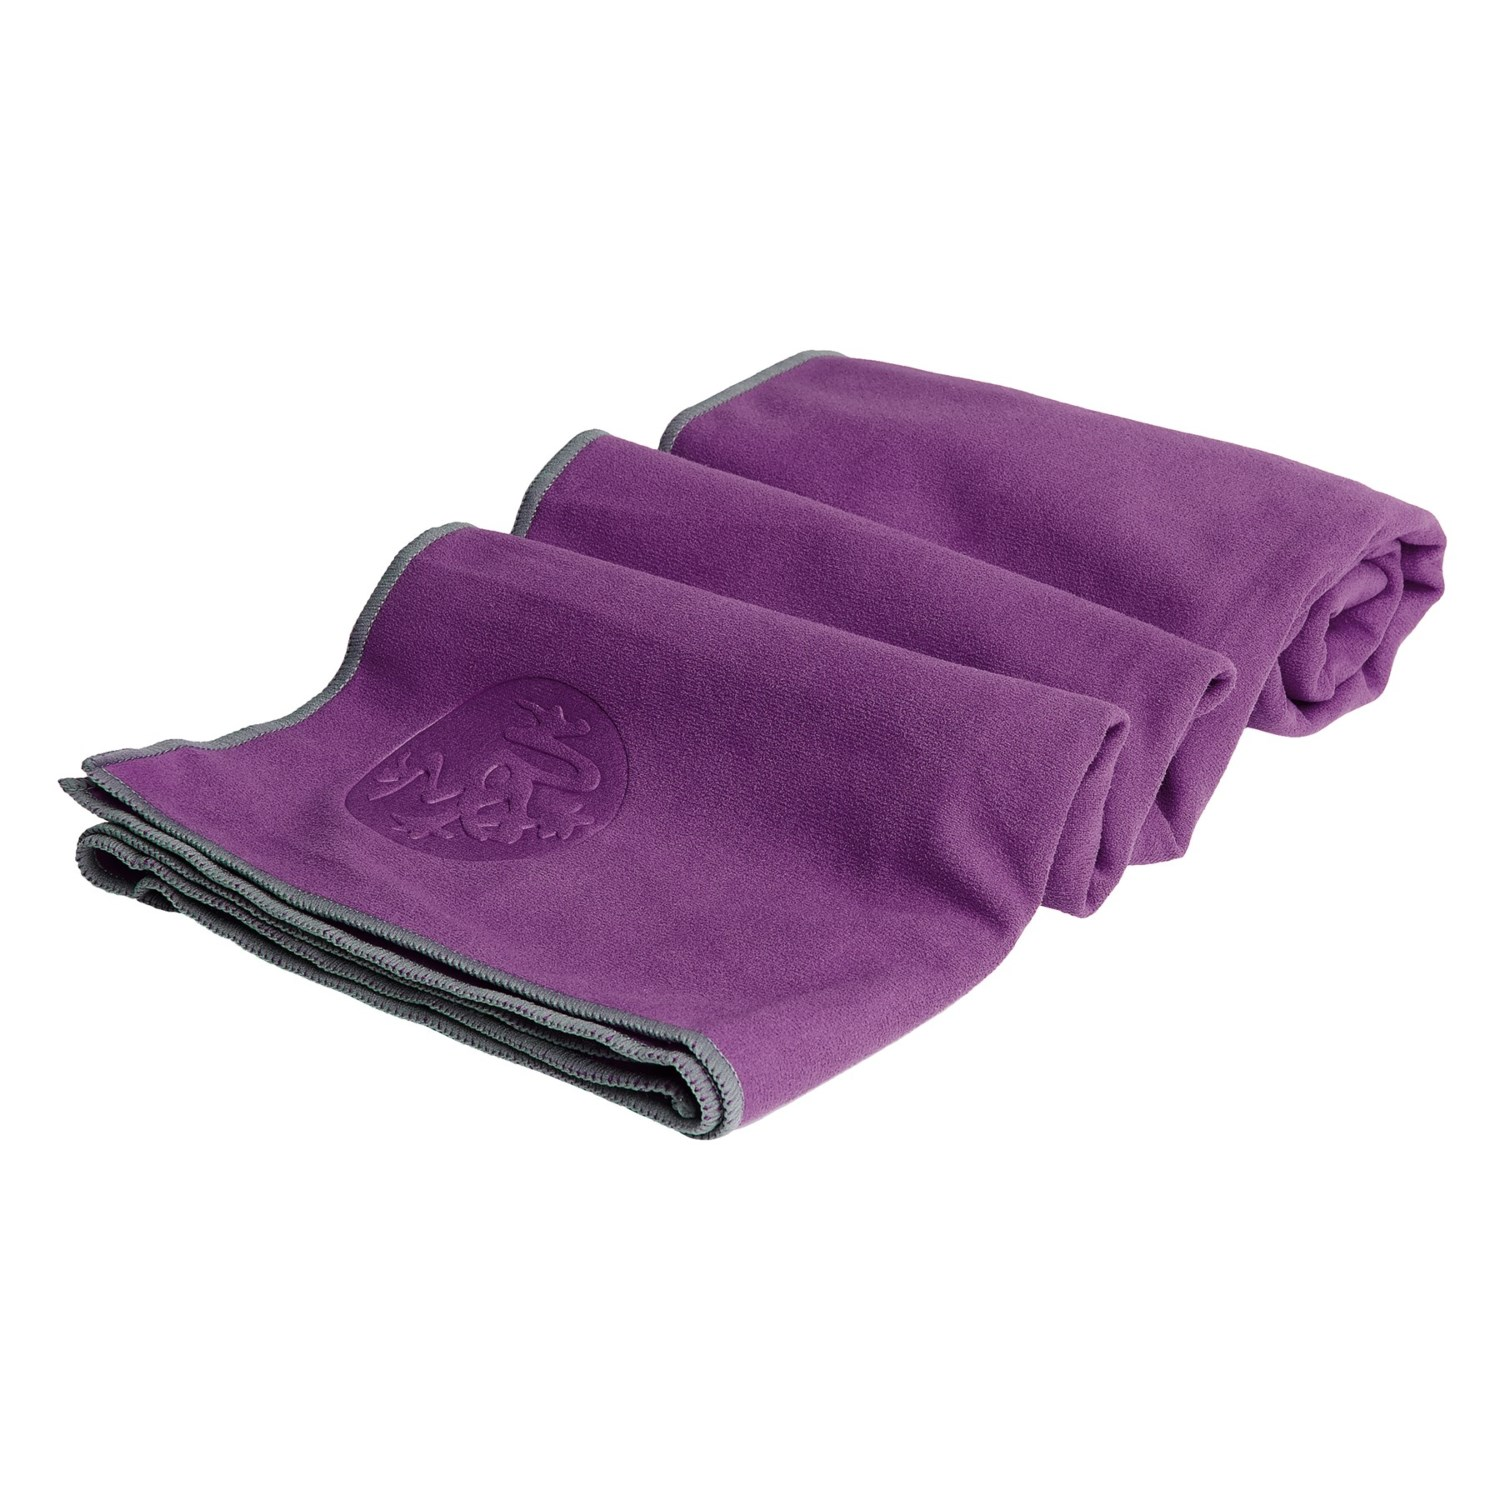 hot anchor fit best towel collections yoga purple mettadali sellers mat products image